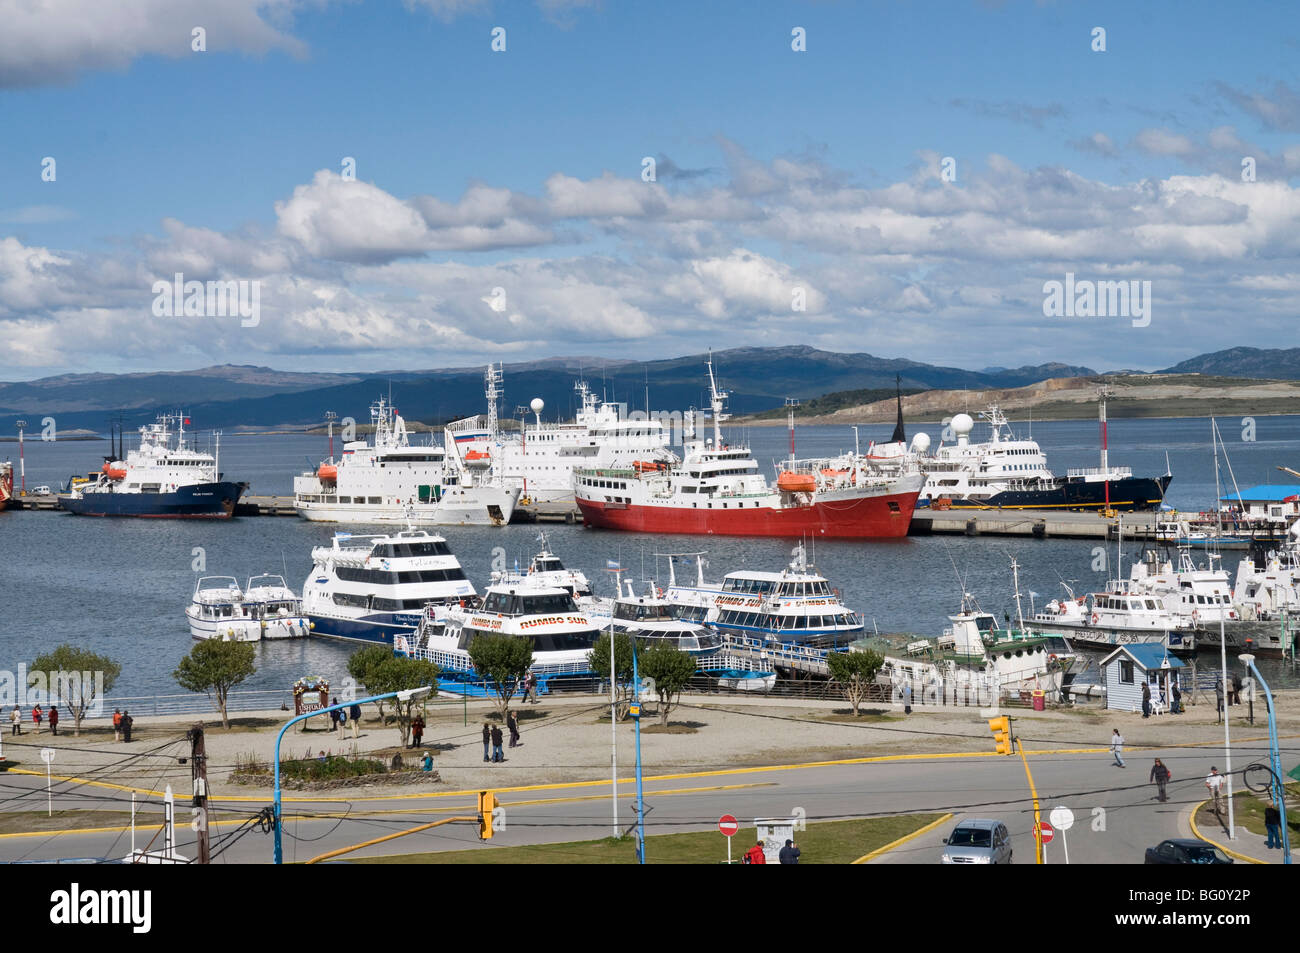 Ships in docks in the southernmost city in the world, Ushuaia, Argentina, South America - Stock Image